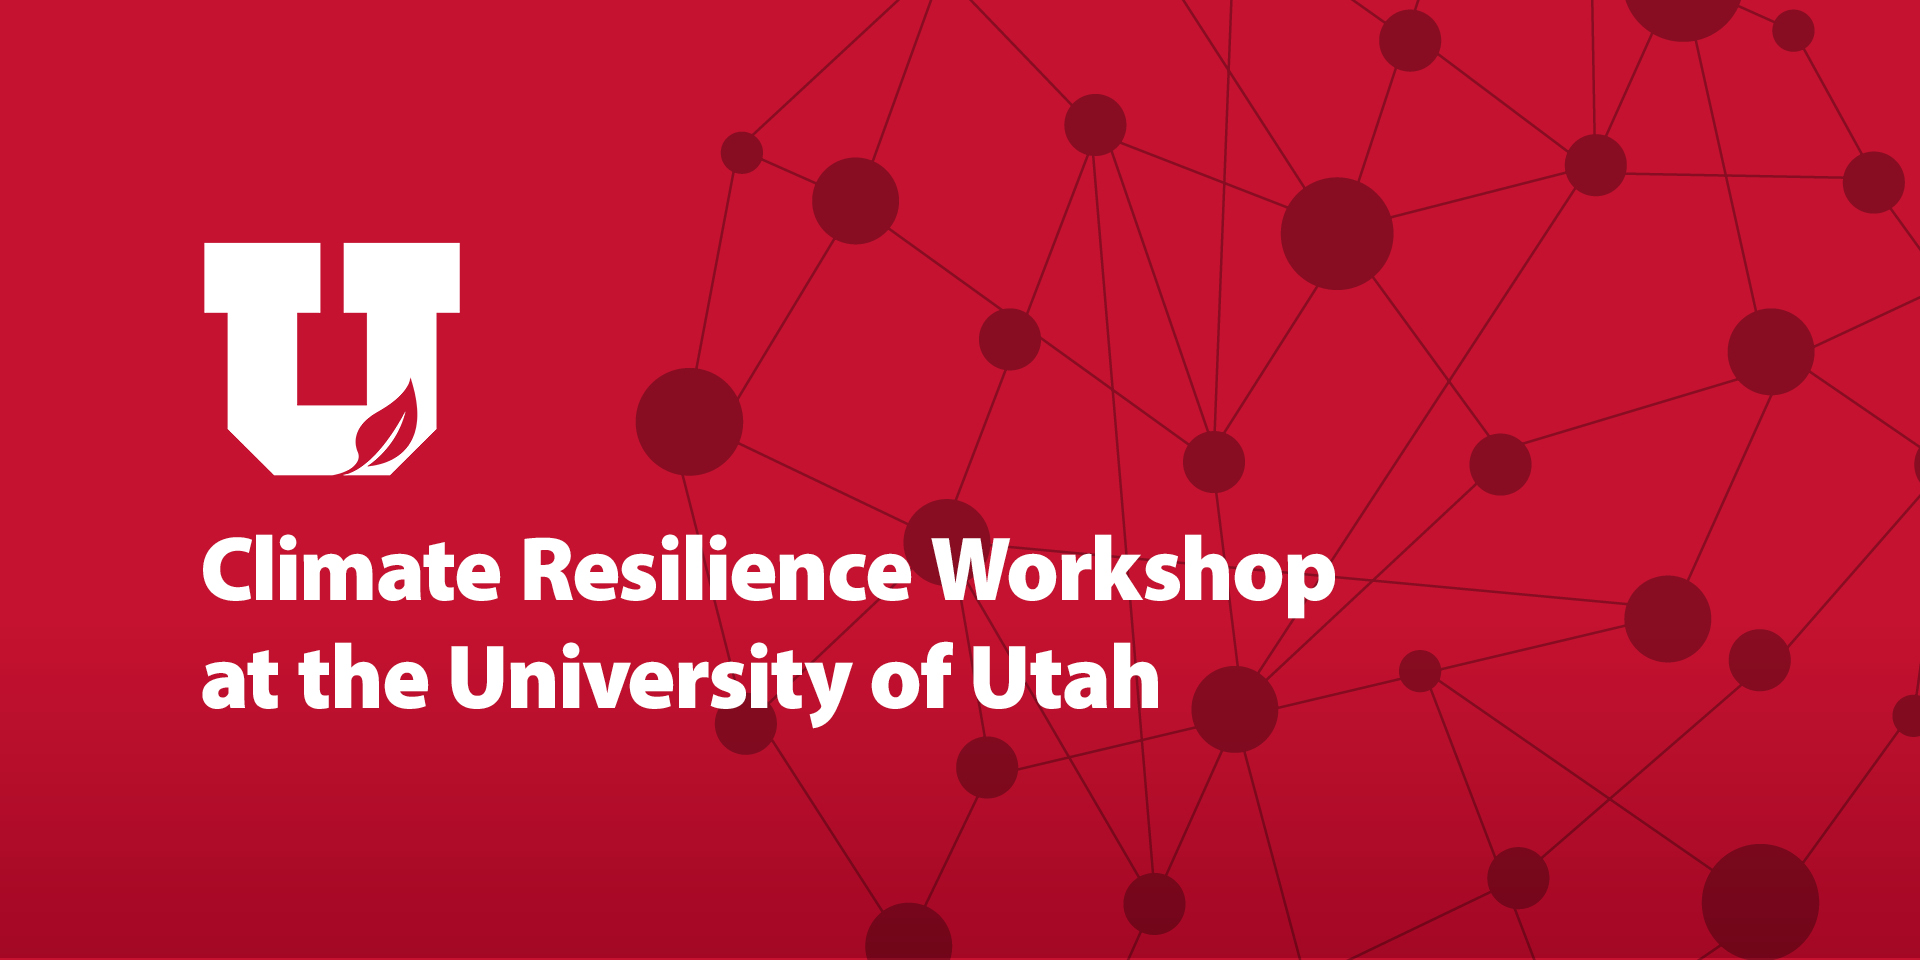 climate resilience workshop at the University of Utah